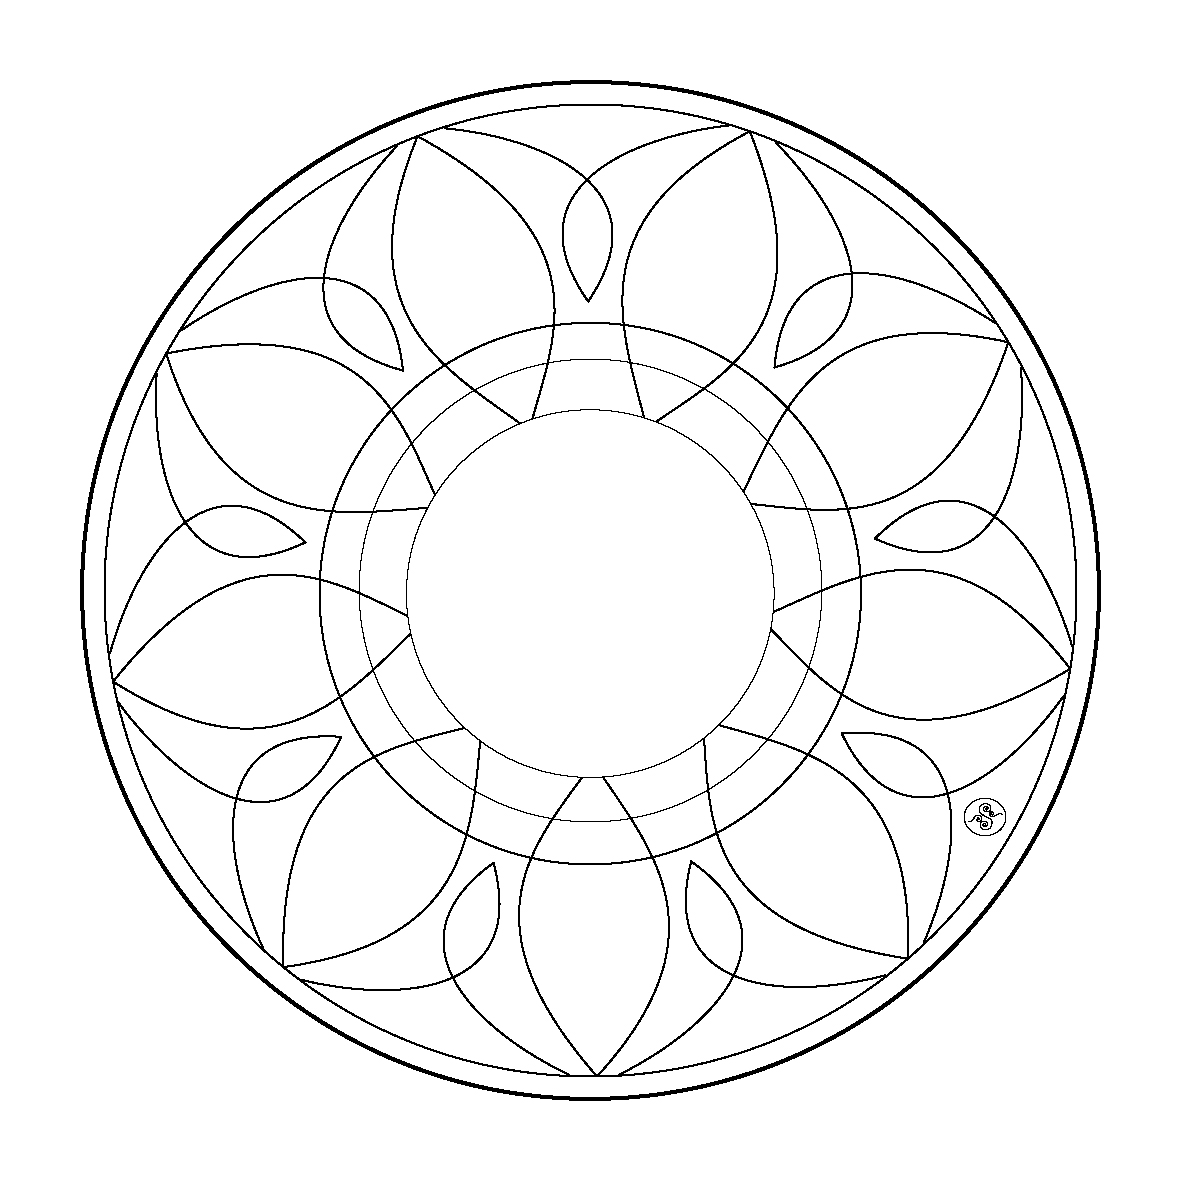 Mandala Coloring pages FREE coloring pages 21 Free